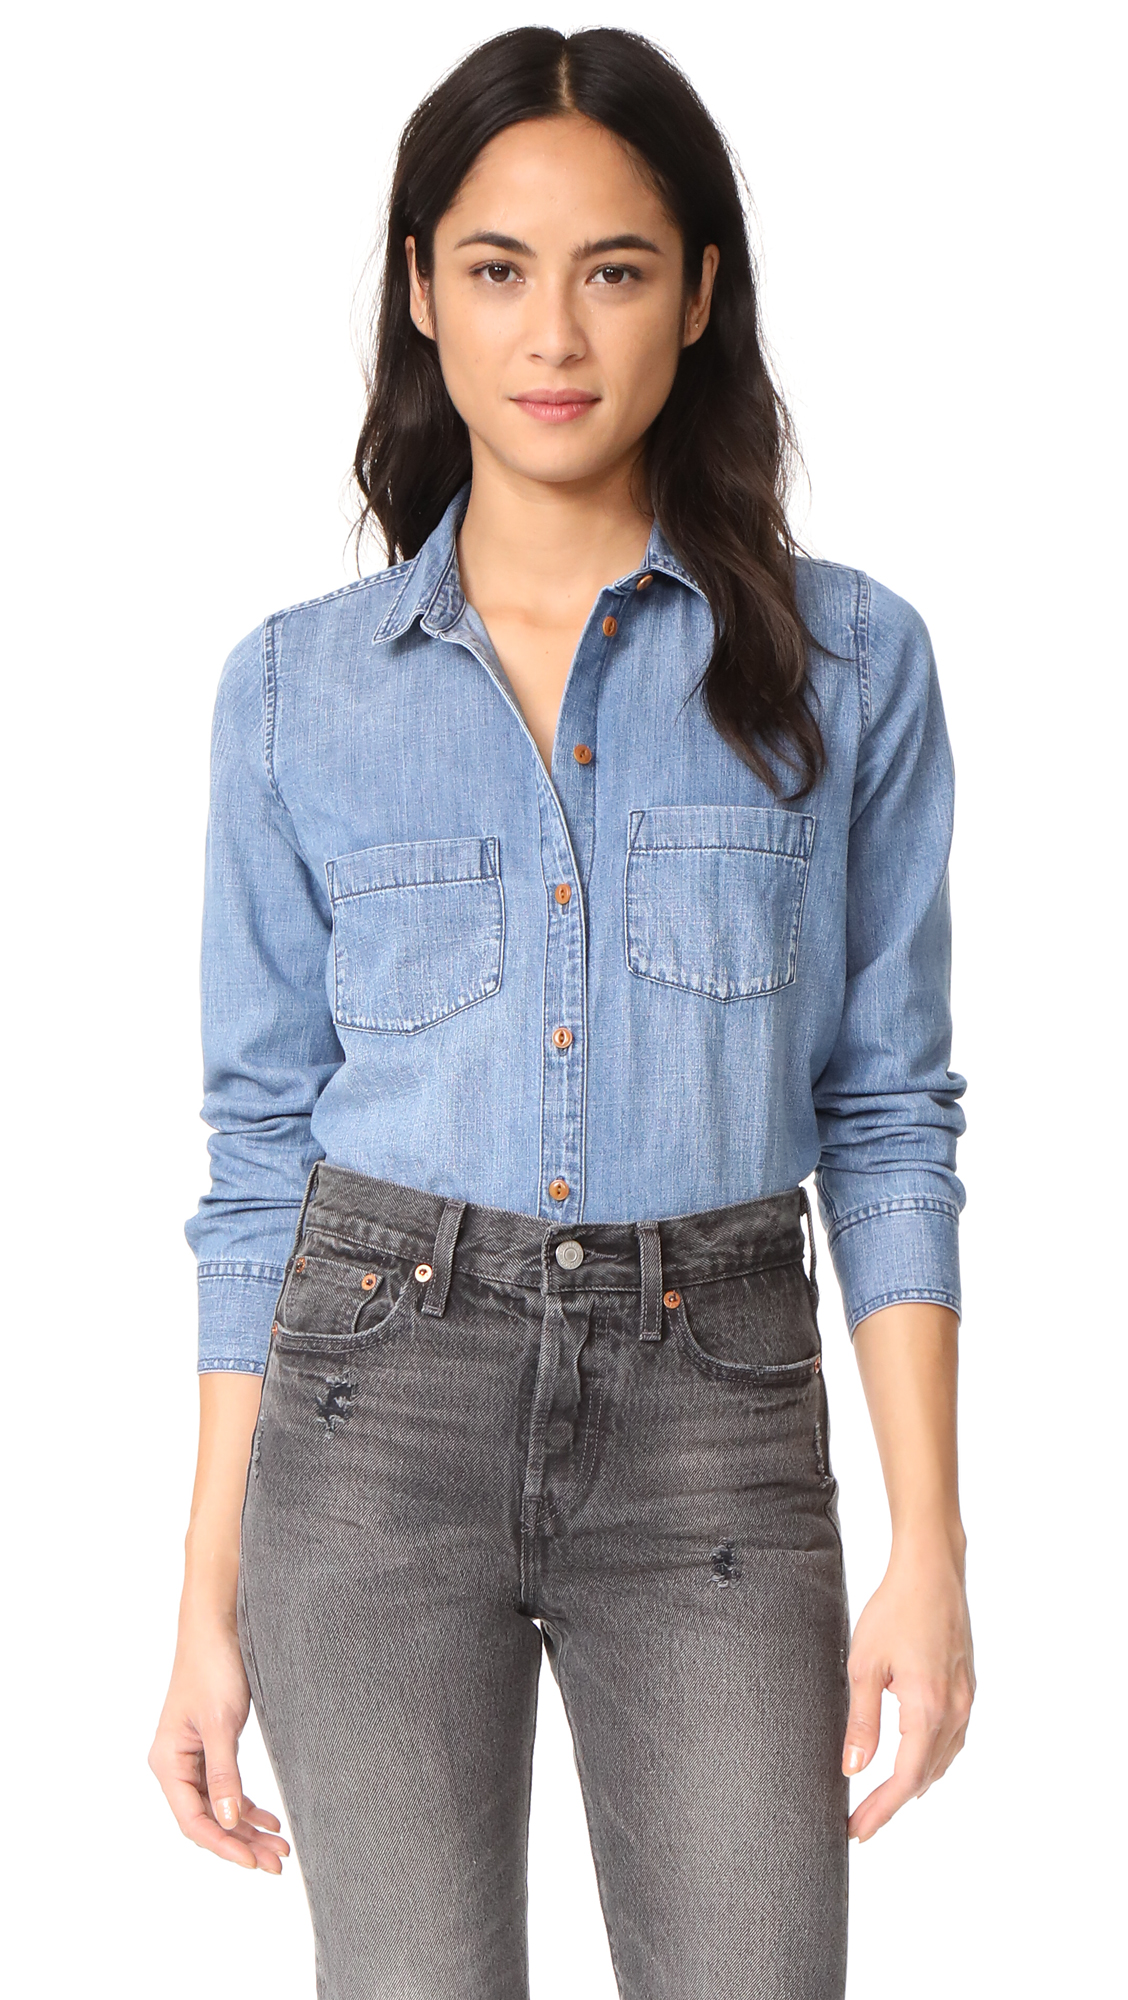 Madewell Denim Shirt - Benwick Wash